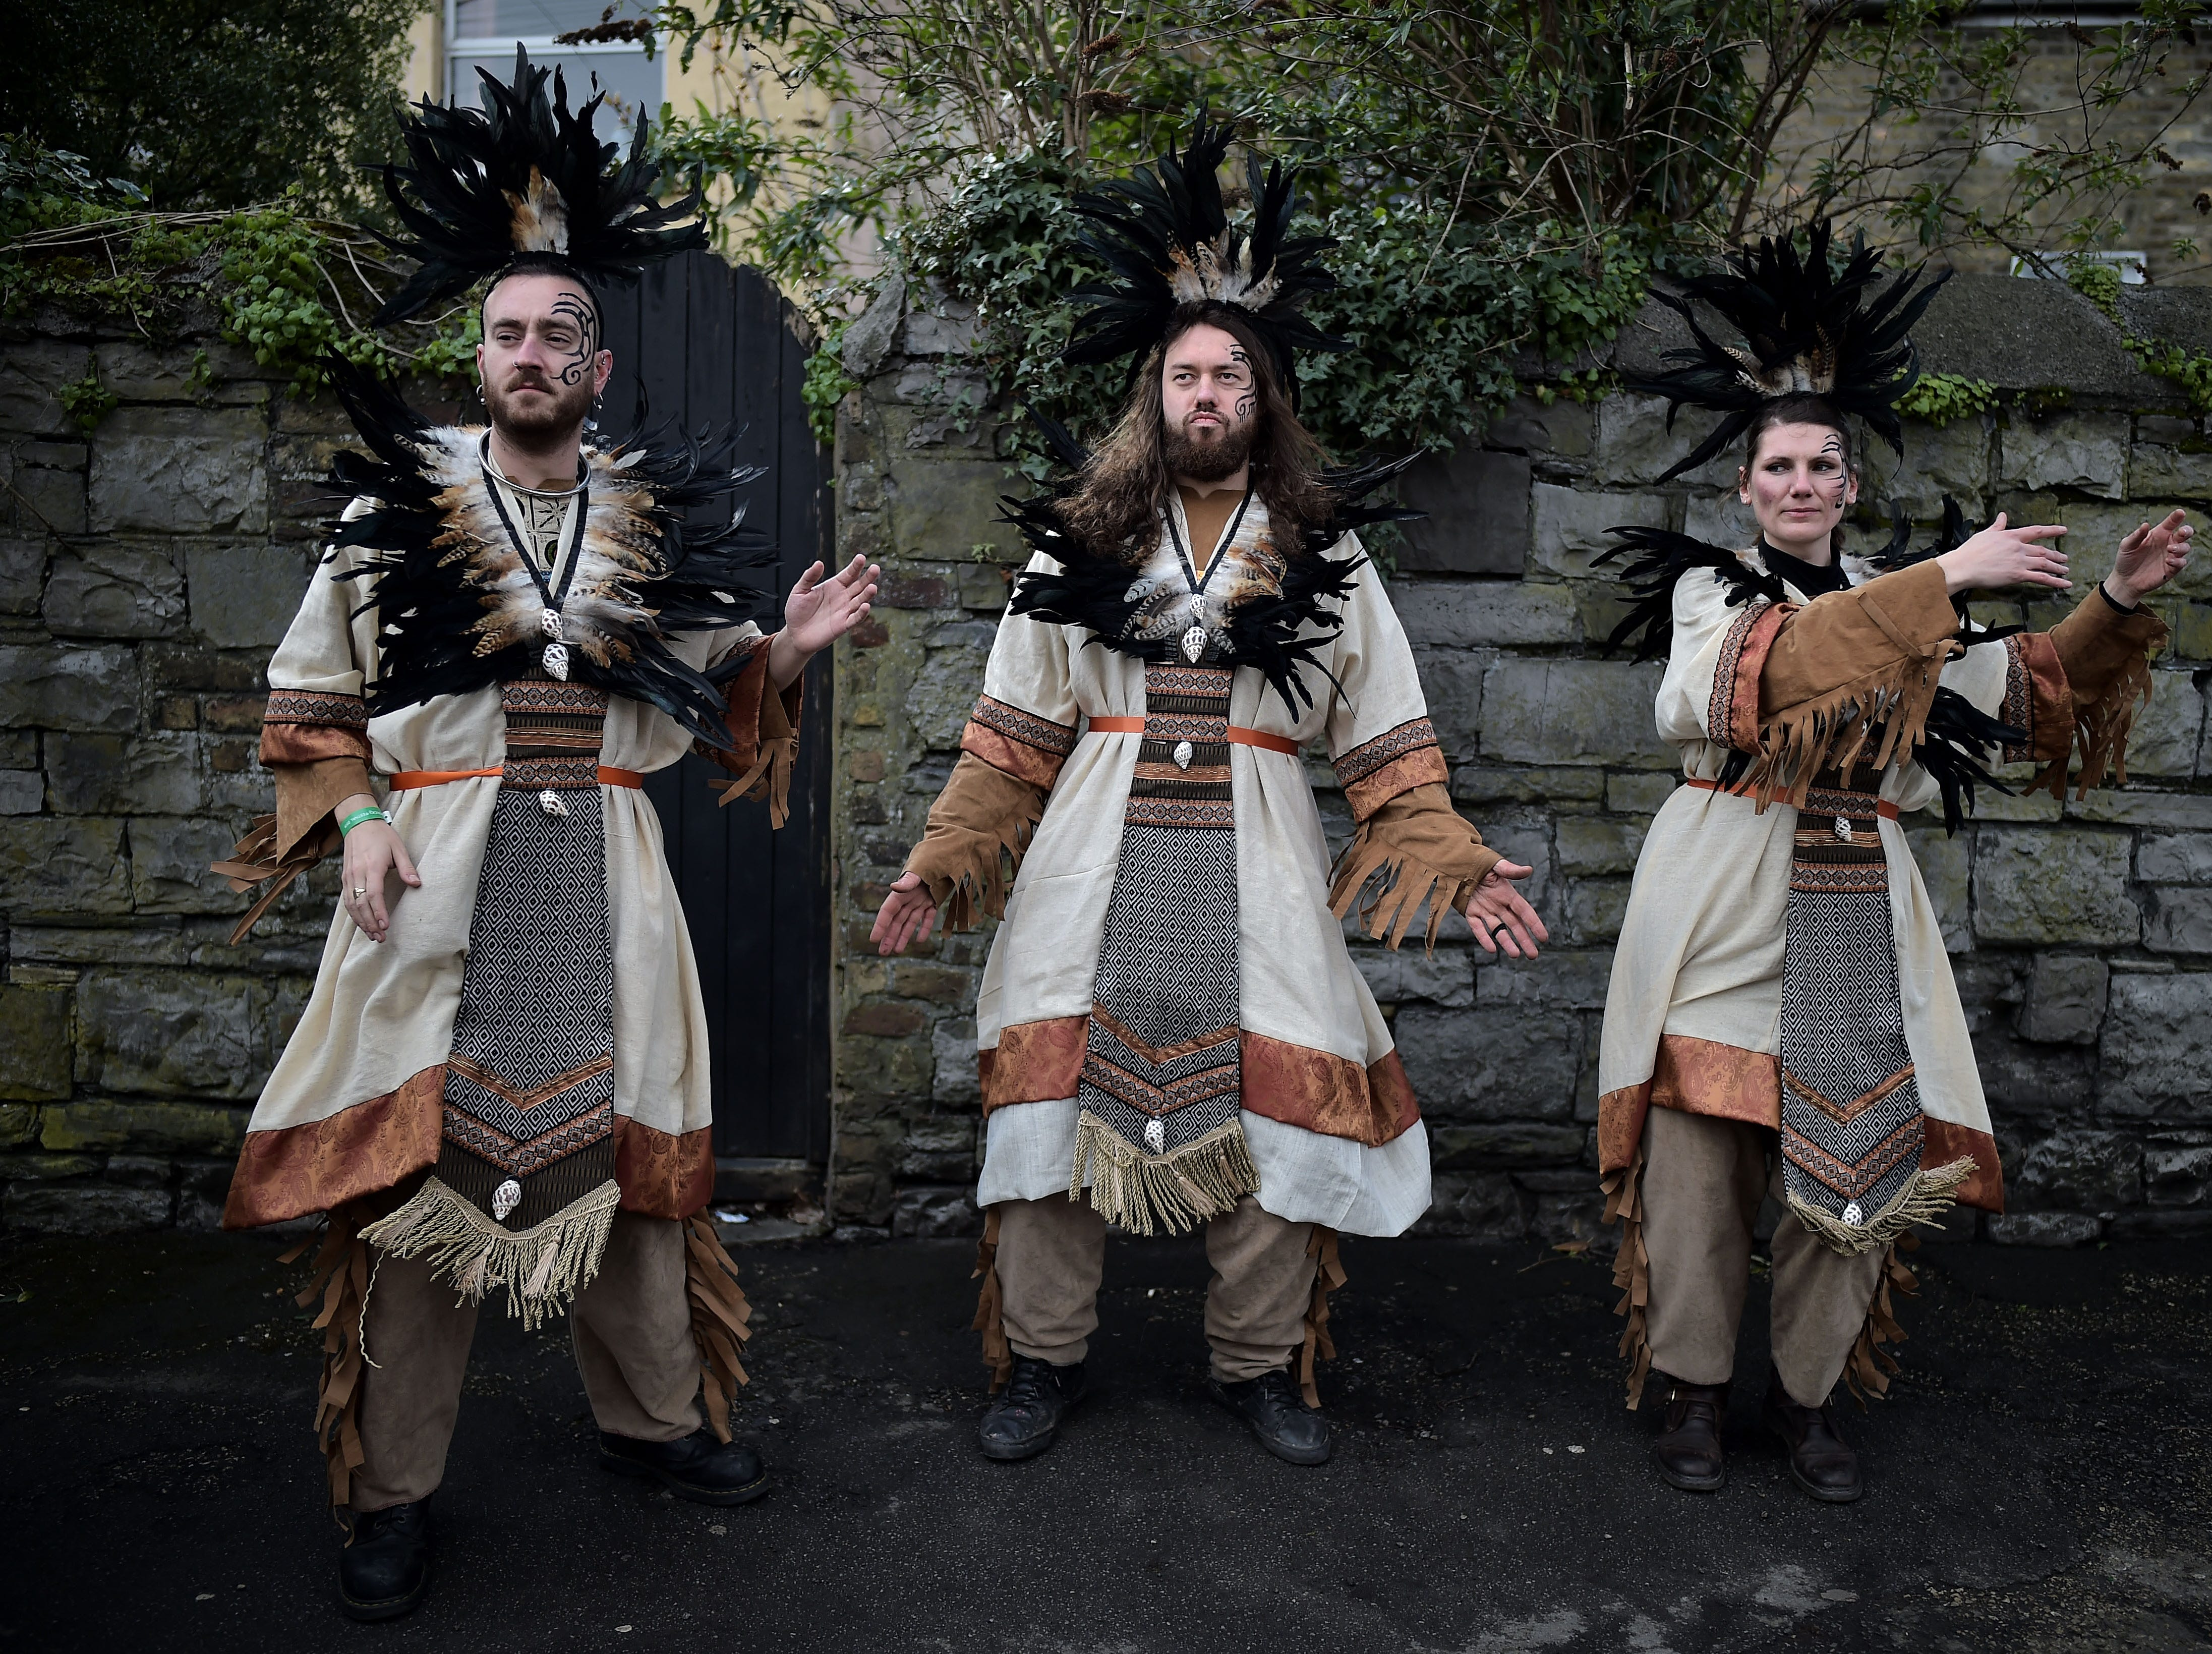 Festival participants make final preparations before taking part in the annual Saint Patrick's Day parade on March 17, 2019 in Dublin, Ireland.